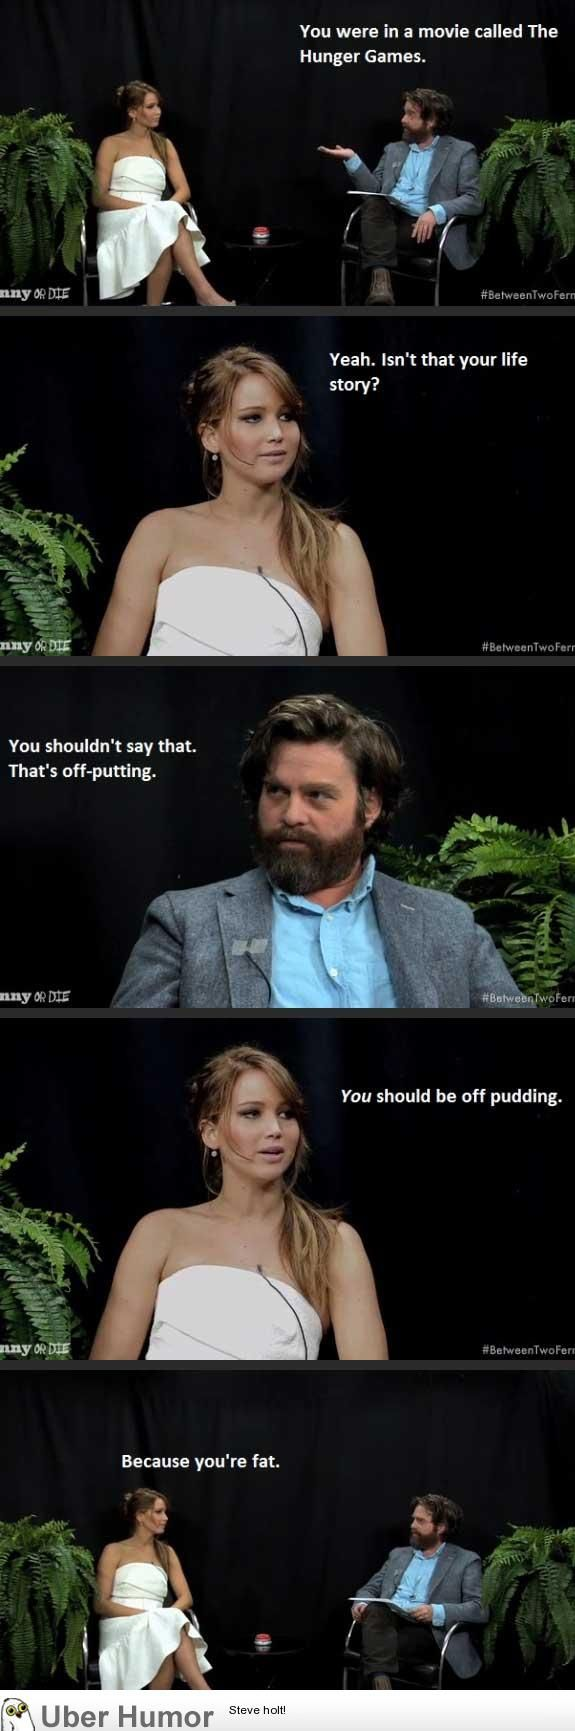 I love this episode of Between Two Ferns because Zach Galifianakis is from my hometown, and J. Lawr is from my husband's town/where we got married. So it's like... meant to be?